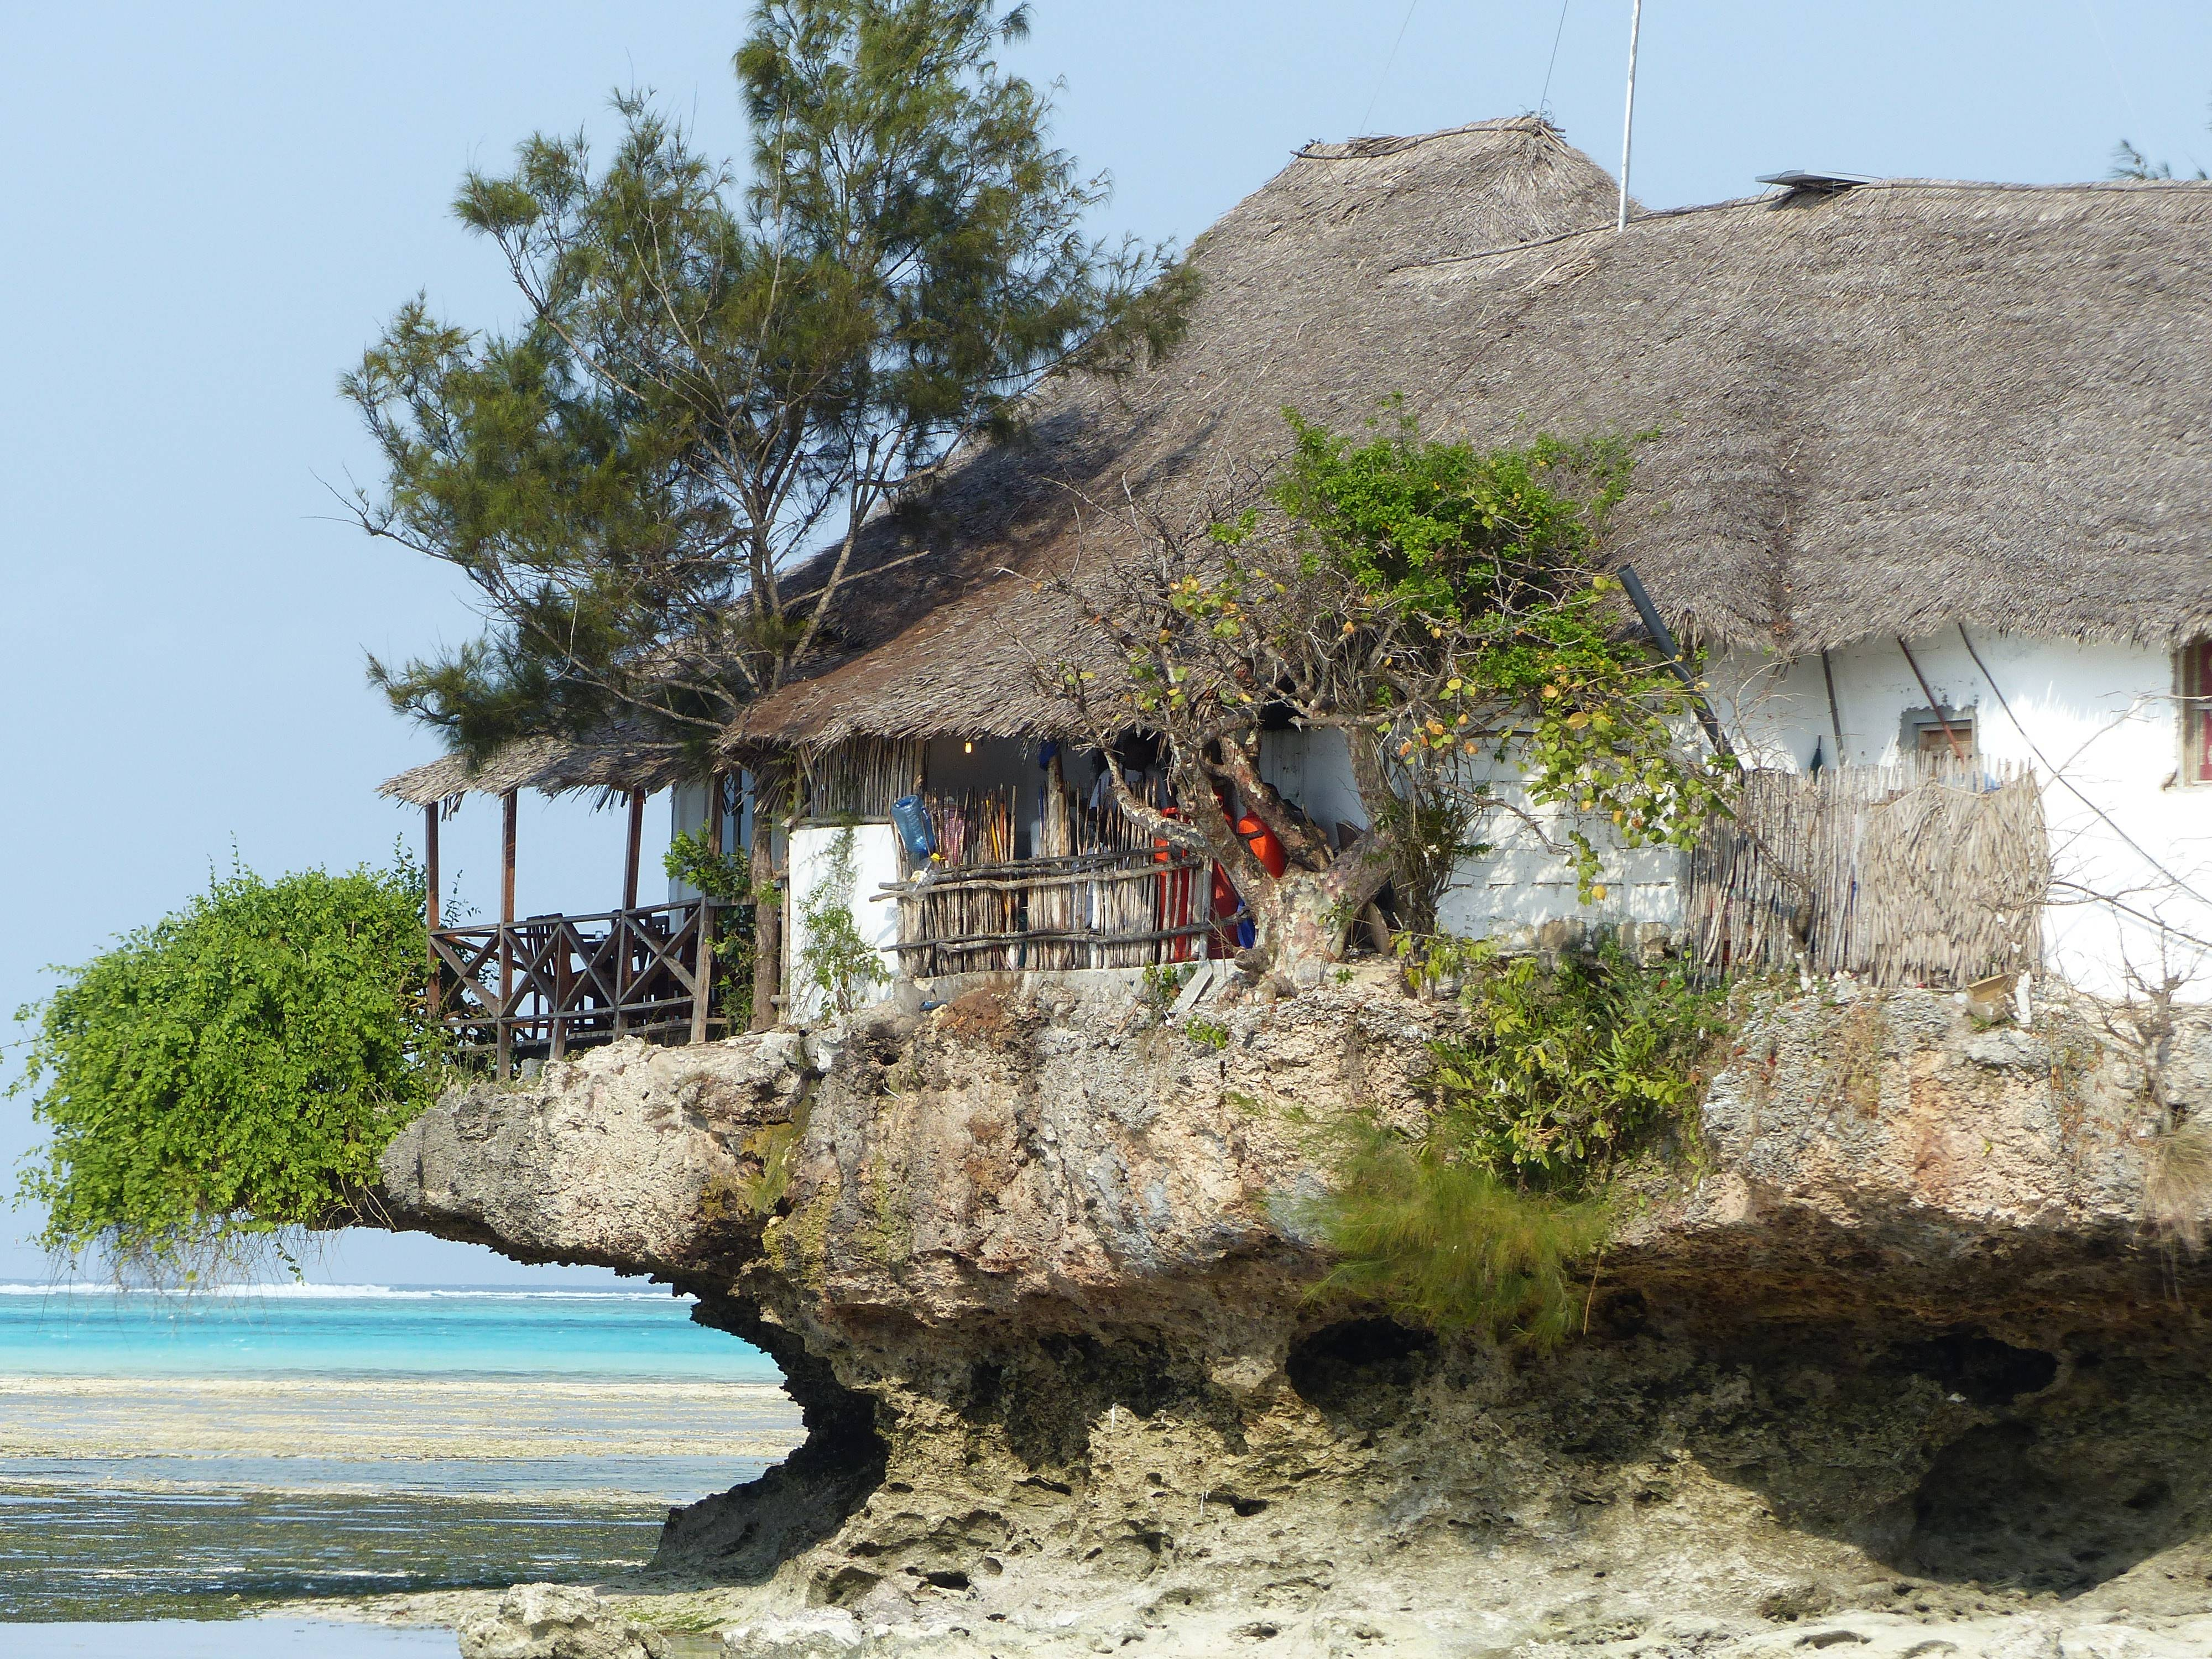 Photo 1: TANZANIE ZANZIBAR - THE ROCK